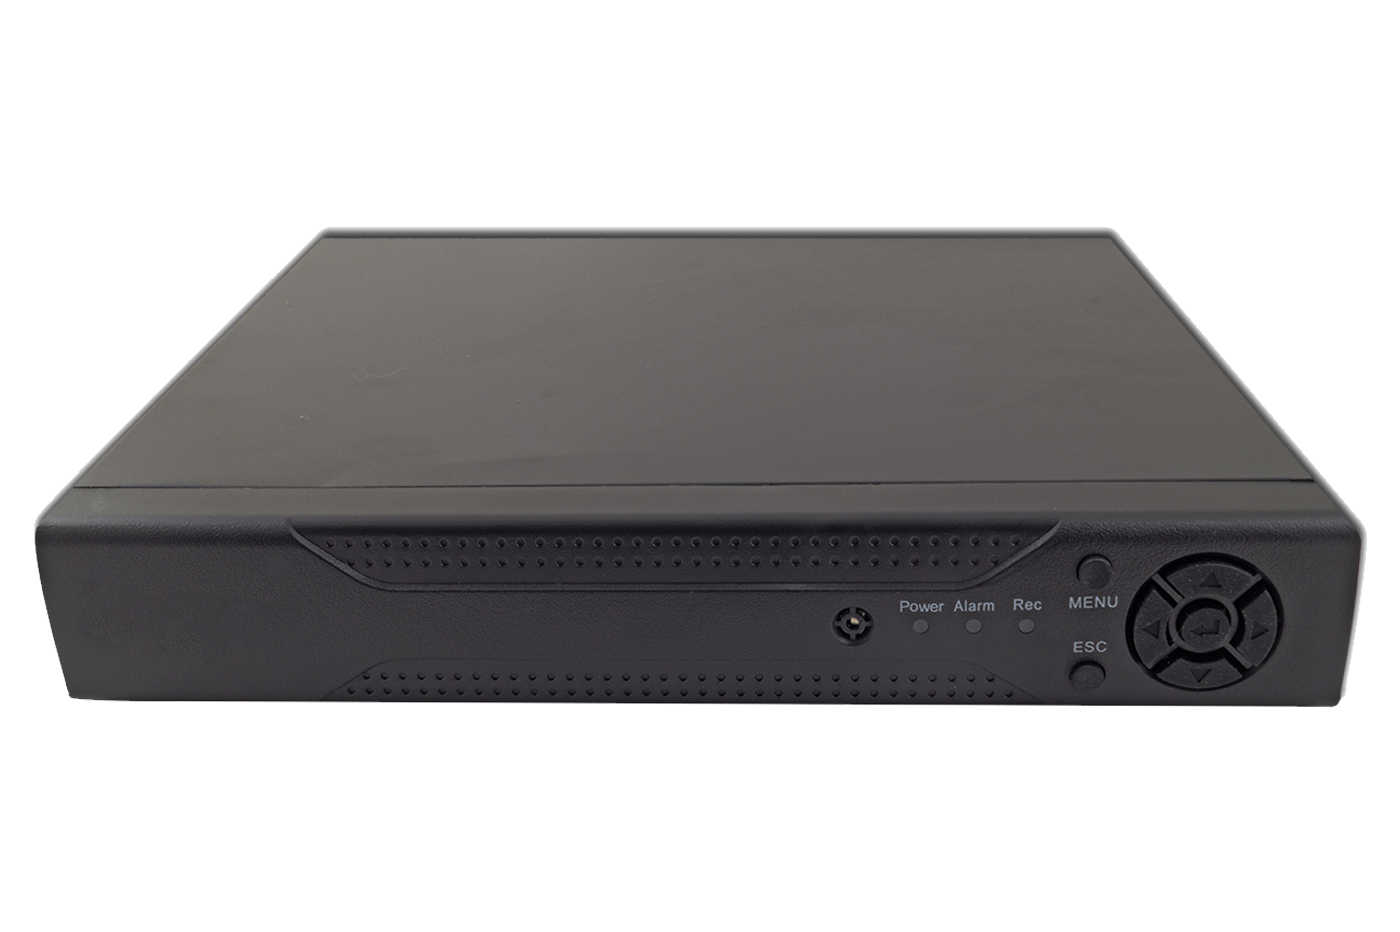 DVR VIDEOSORVEGLIANZA 16 CH CANALI HDMI LAN H264 AUDIO VIDEO D6616